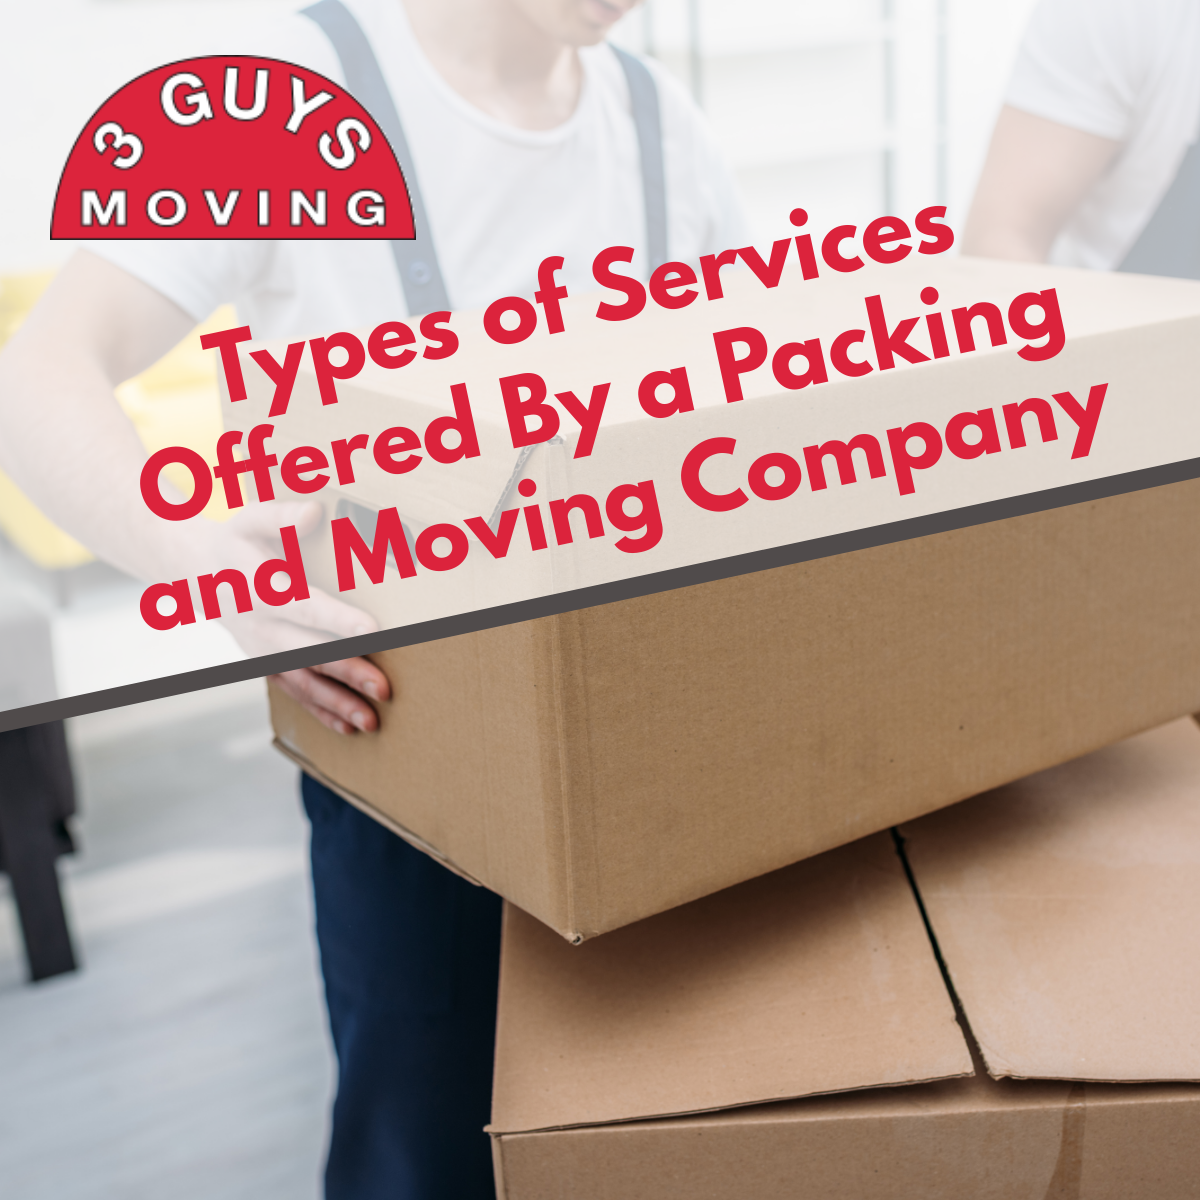 Services Offered By a Packing and Moving Company - Types of Services Offered By a Packing and Moving Company